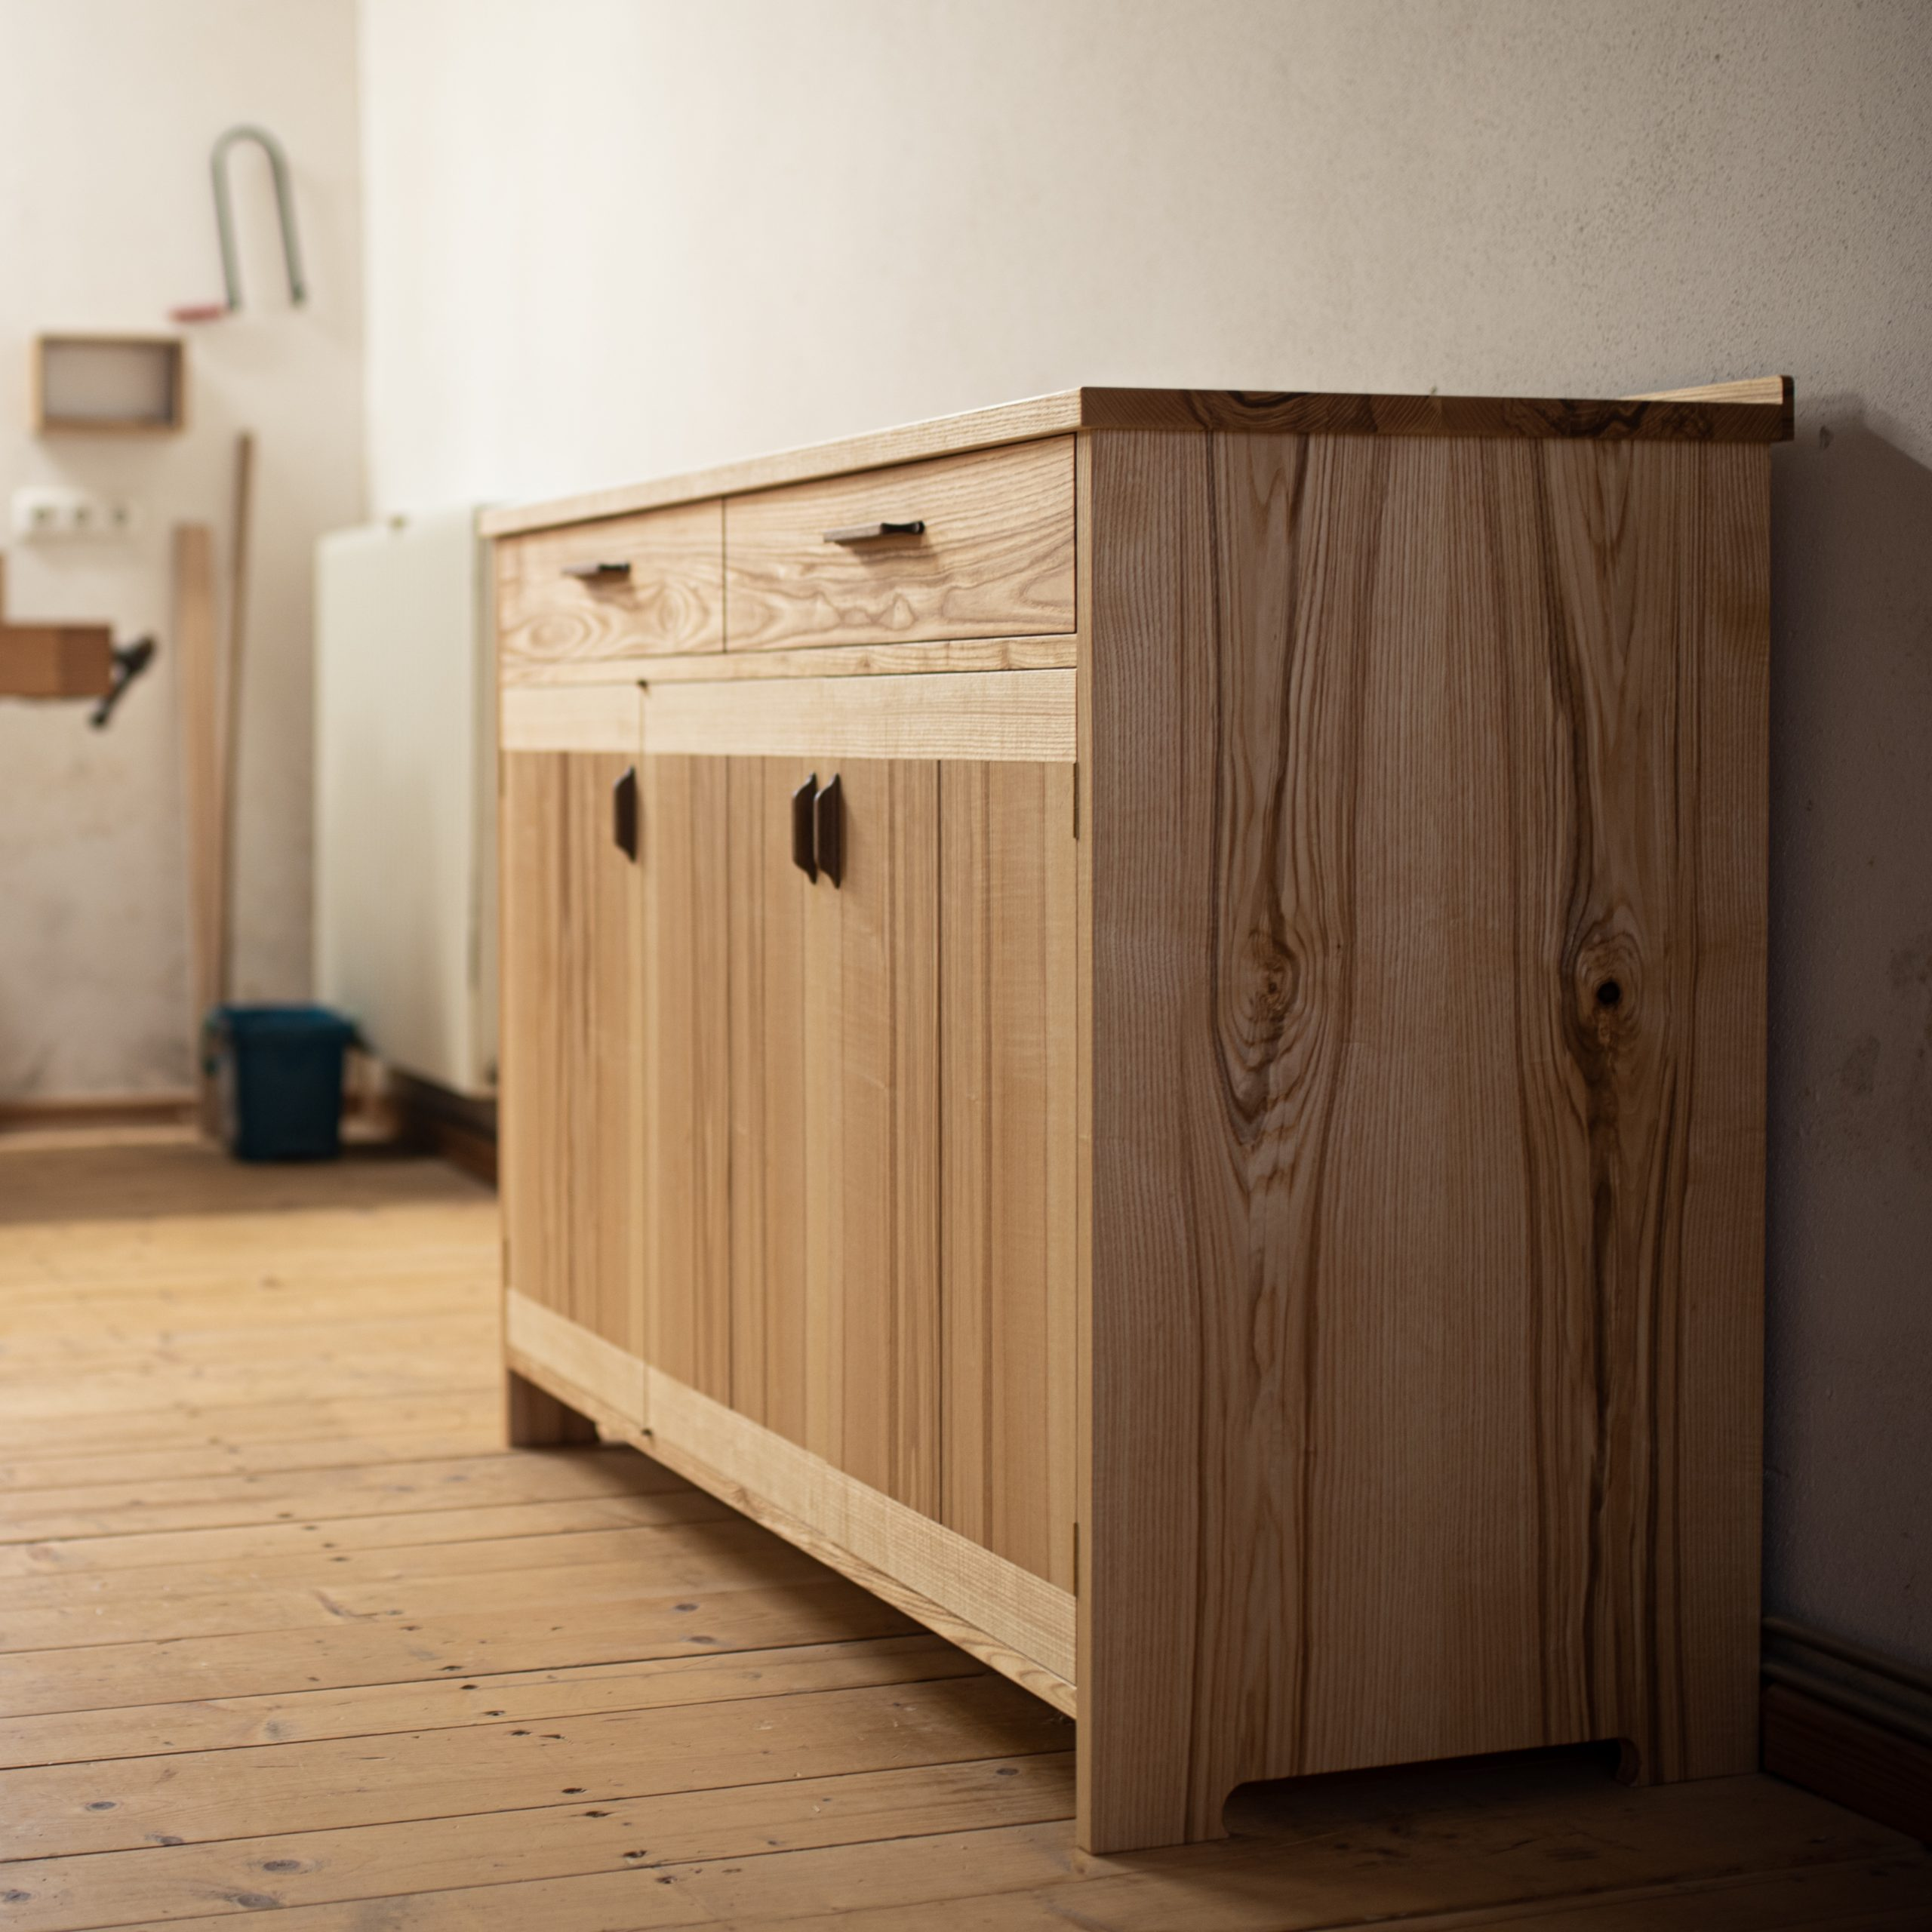 sideboard_cabinet-121-q